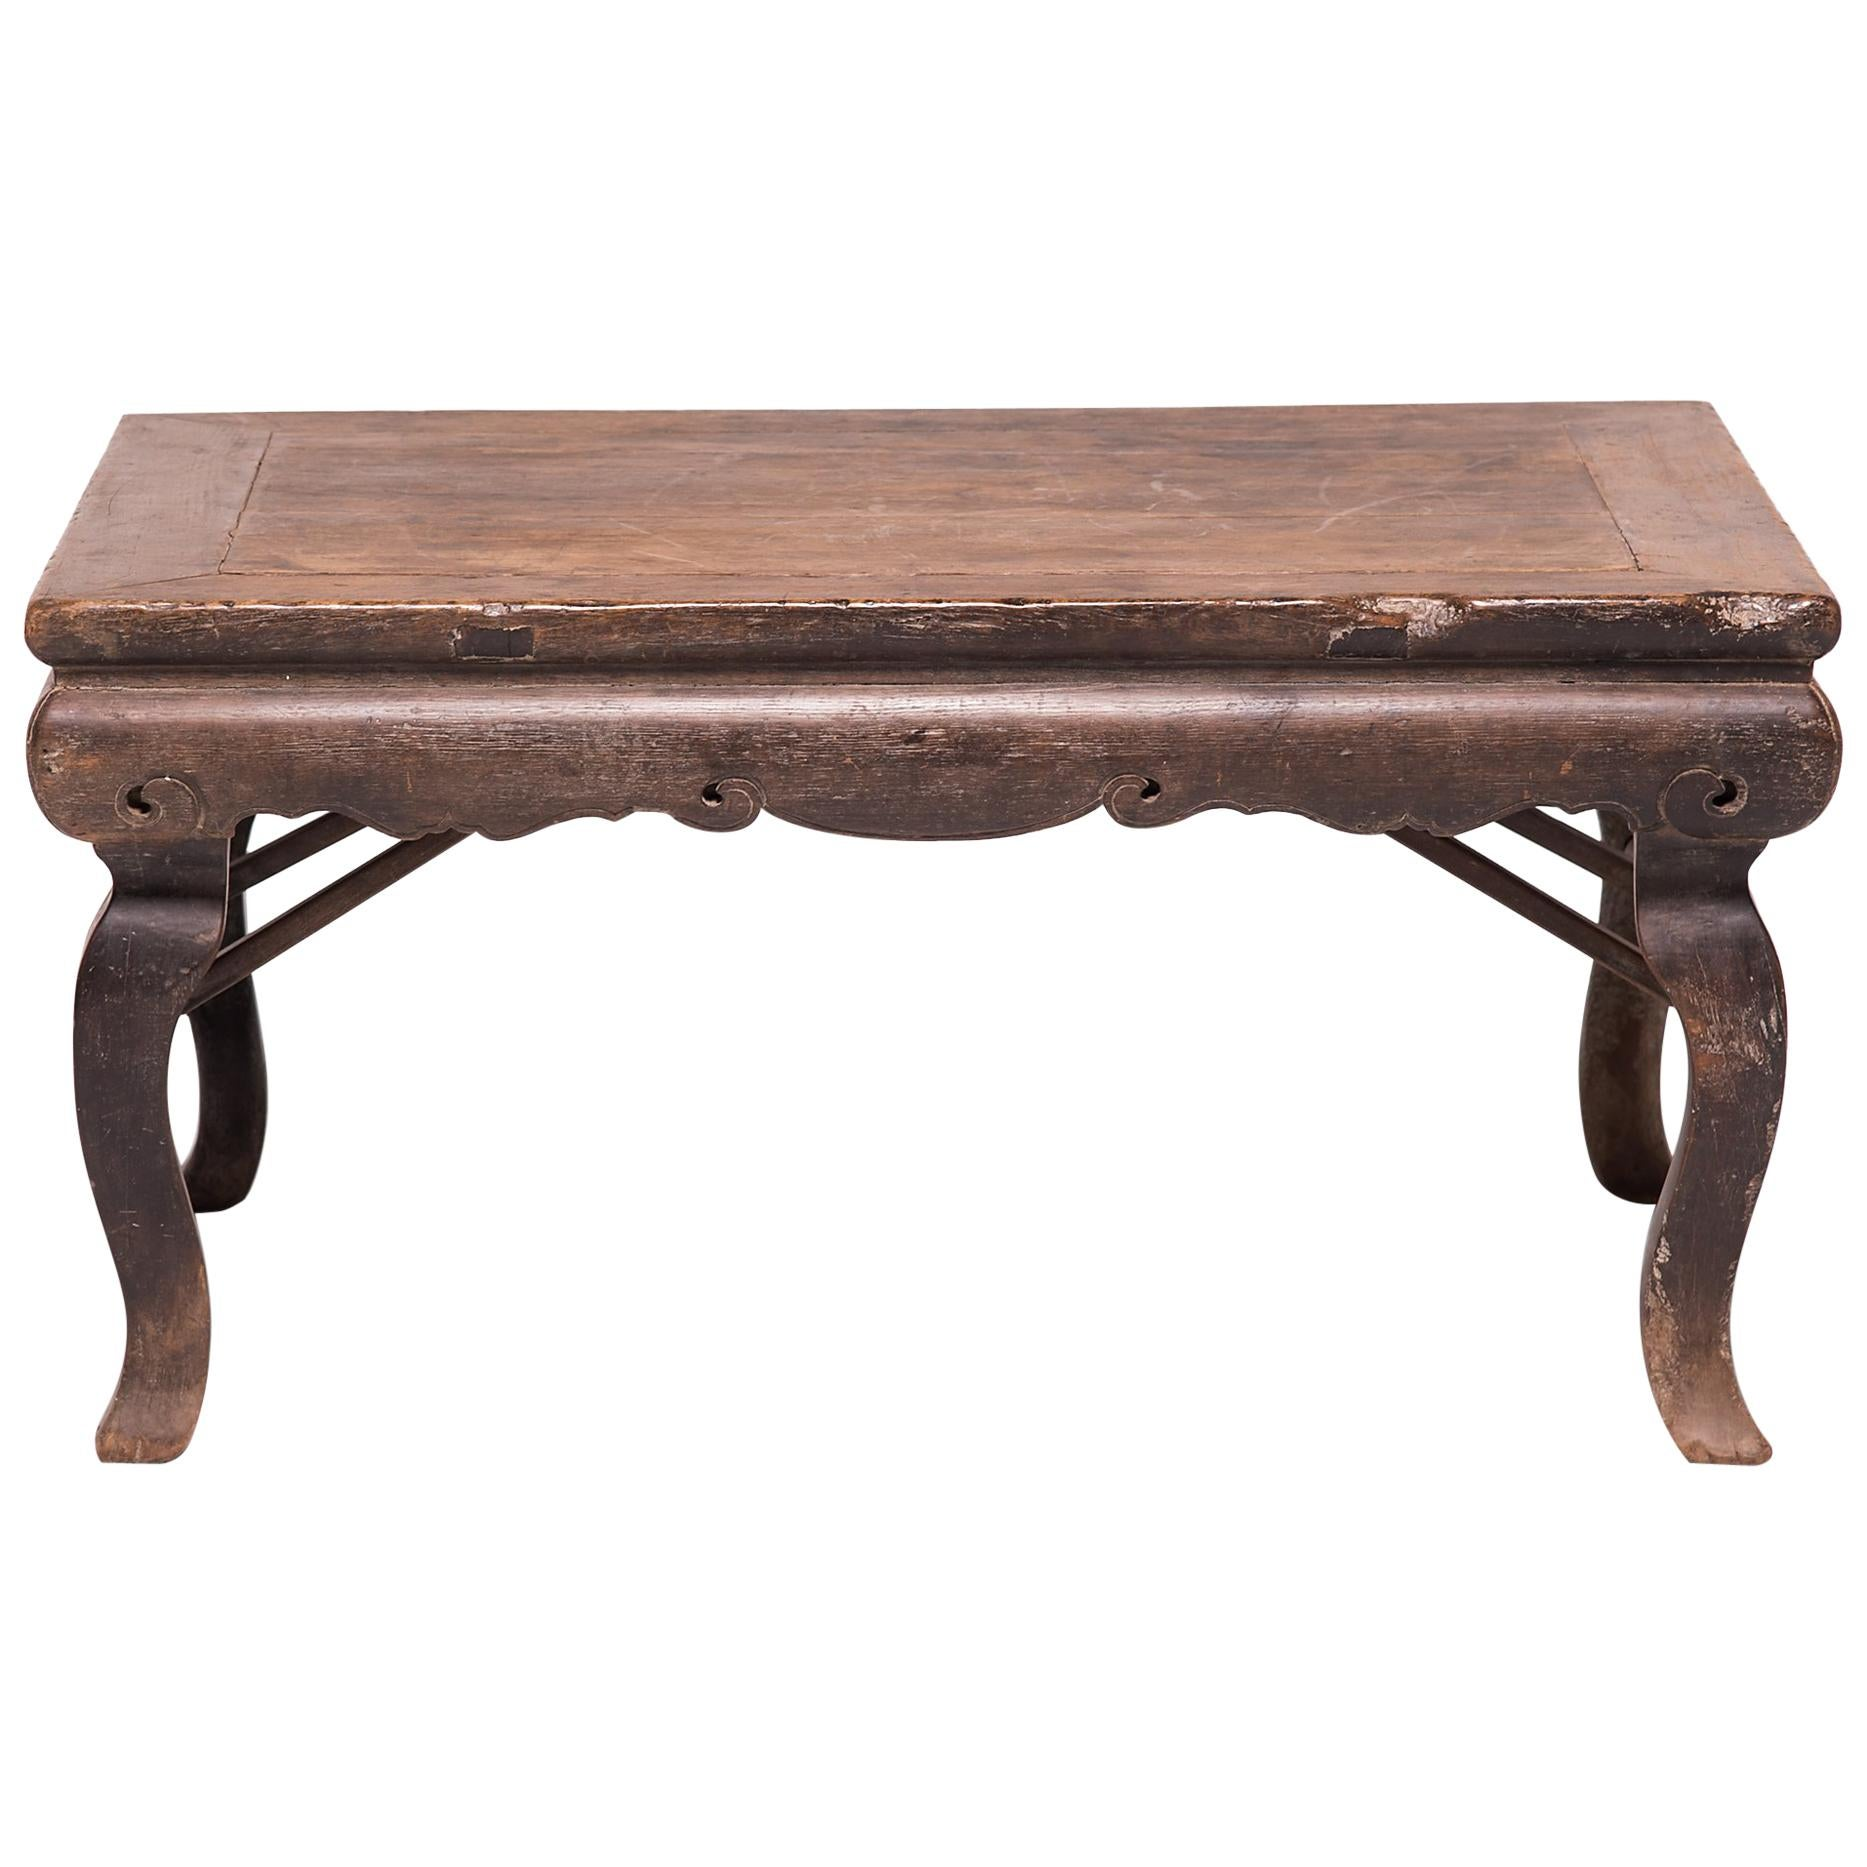 Attirant 19th Century Chinese Folding Kang Table For Sale